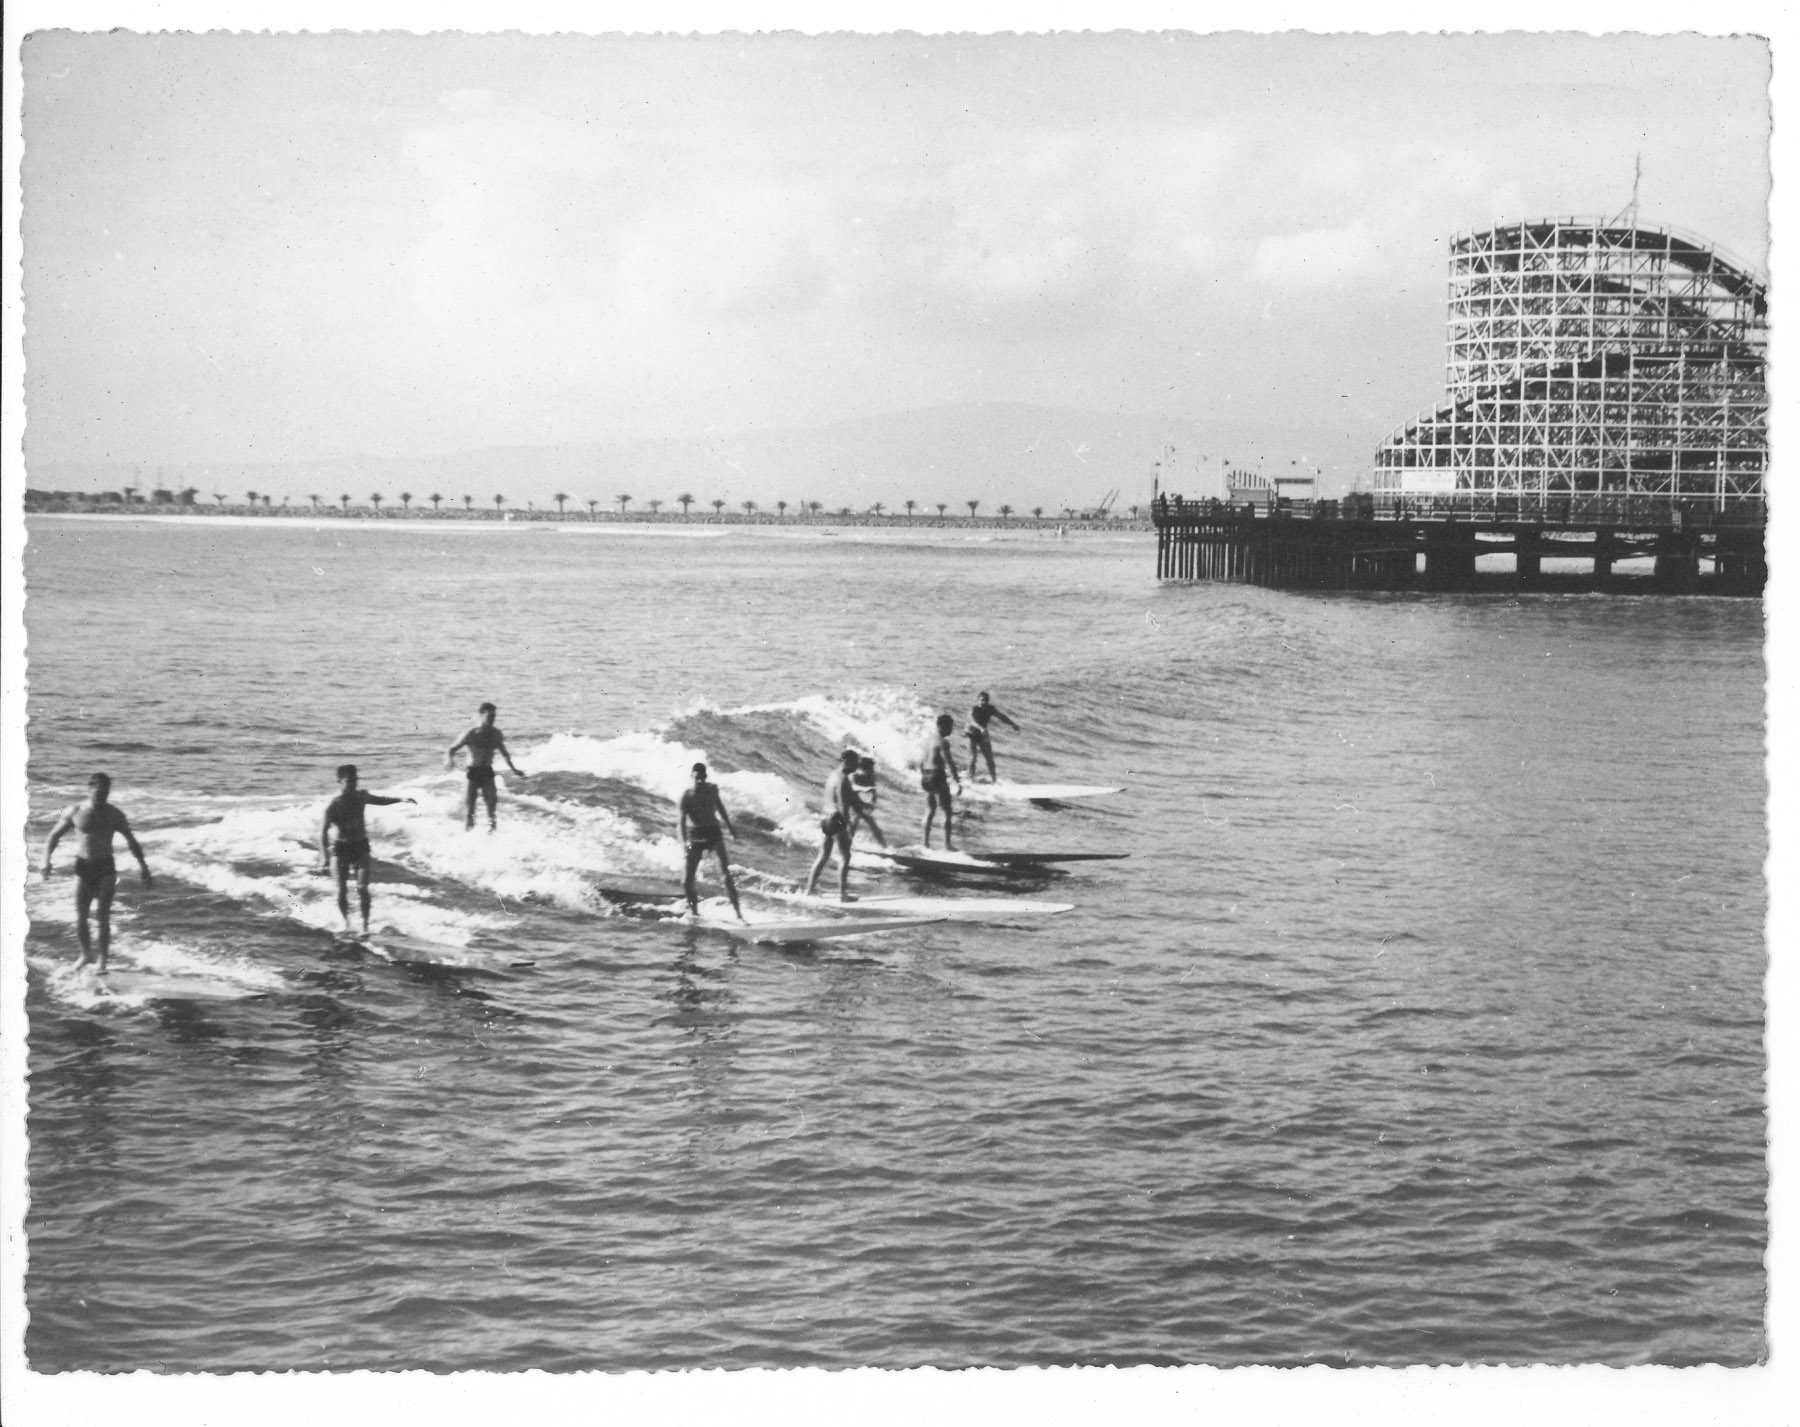 Before the breakwater was built, Long Beach was a popular place to surf in the 1930s. Photo: Lind Family Collection